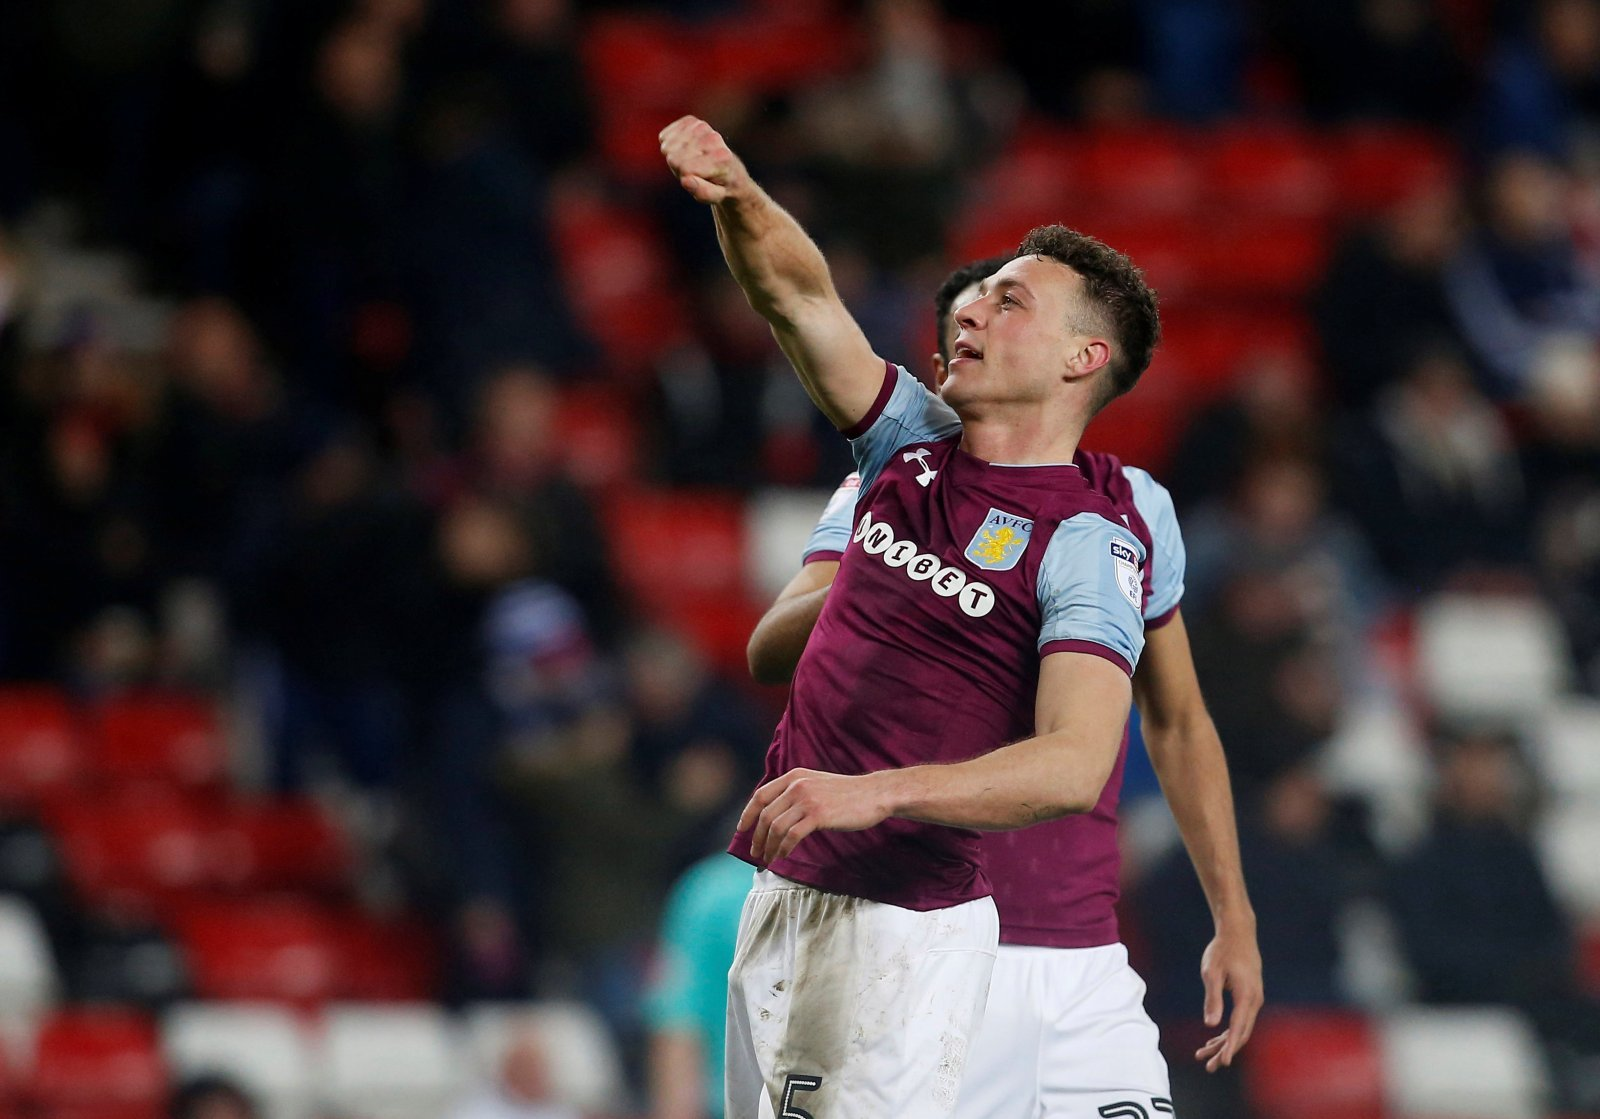 Stoke would be the team to beat in the Championship if they land James Chester